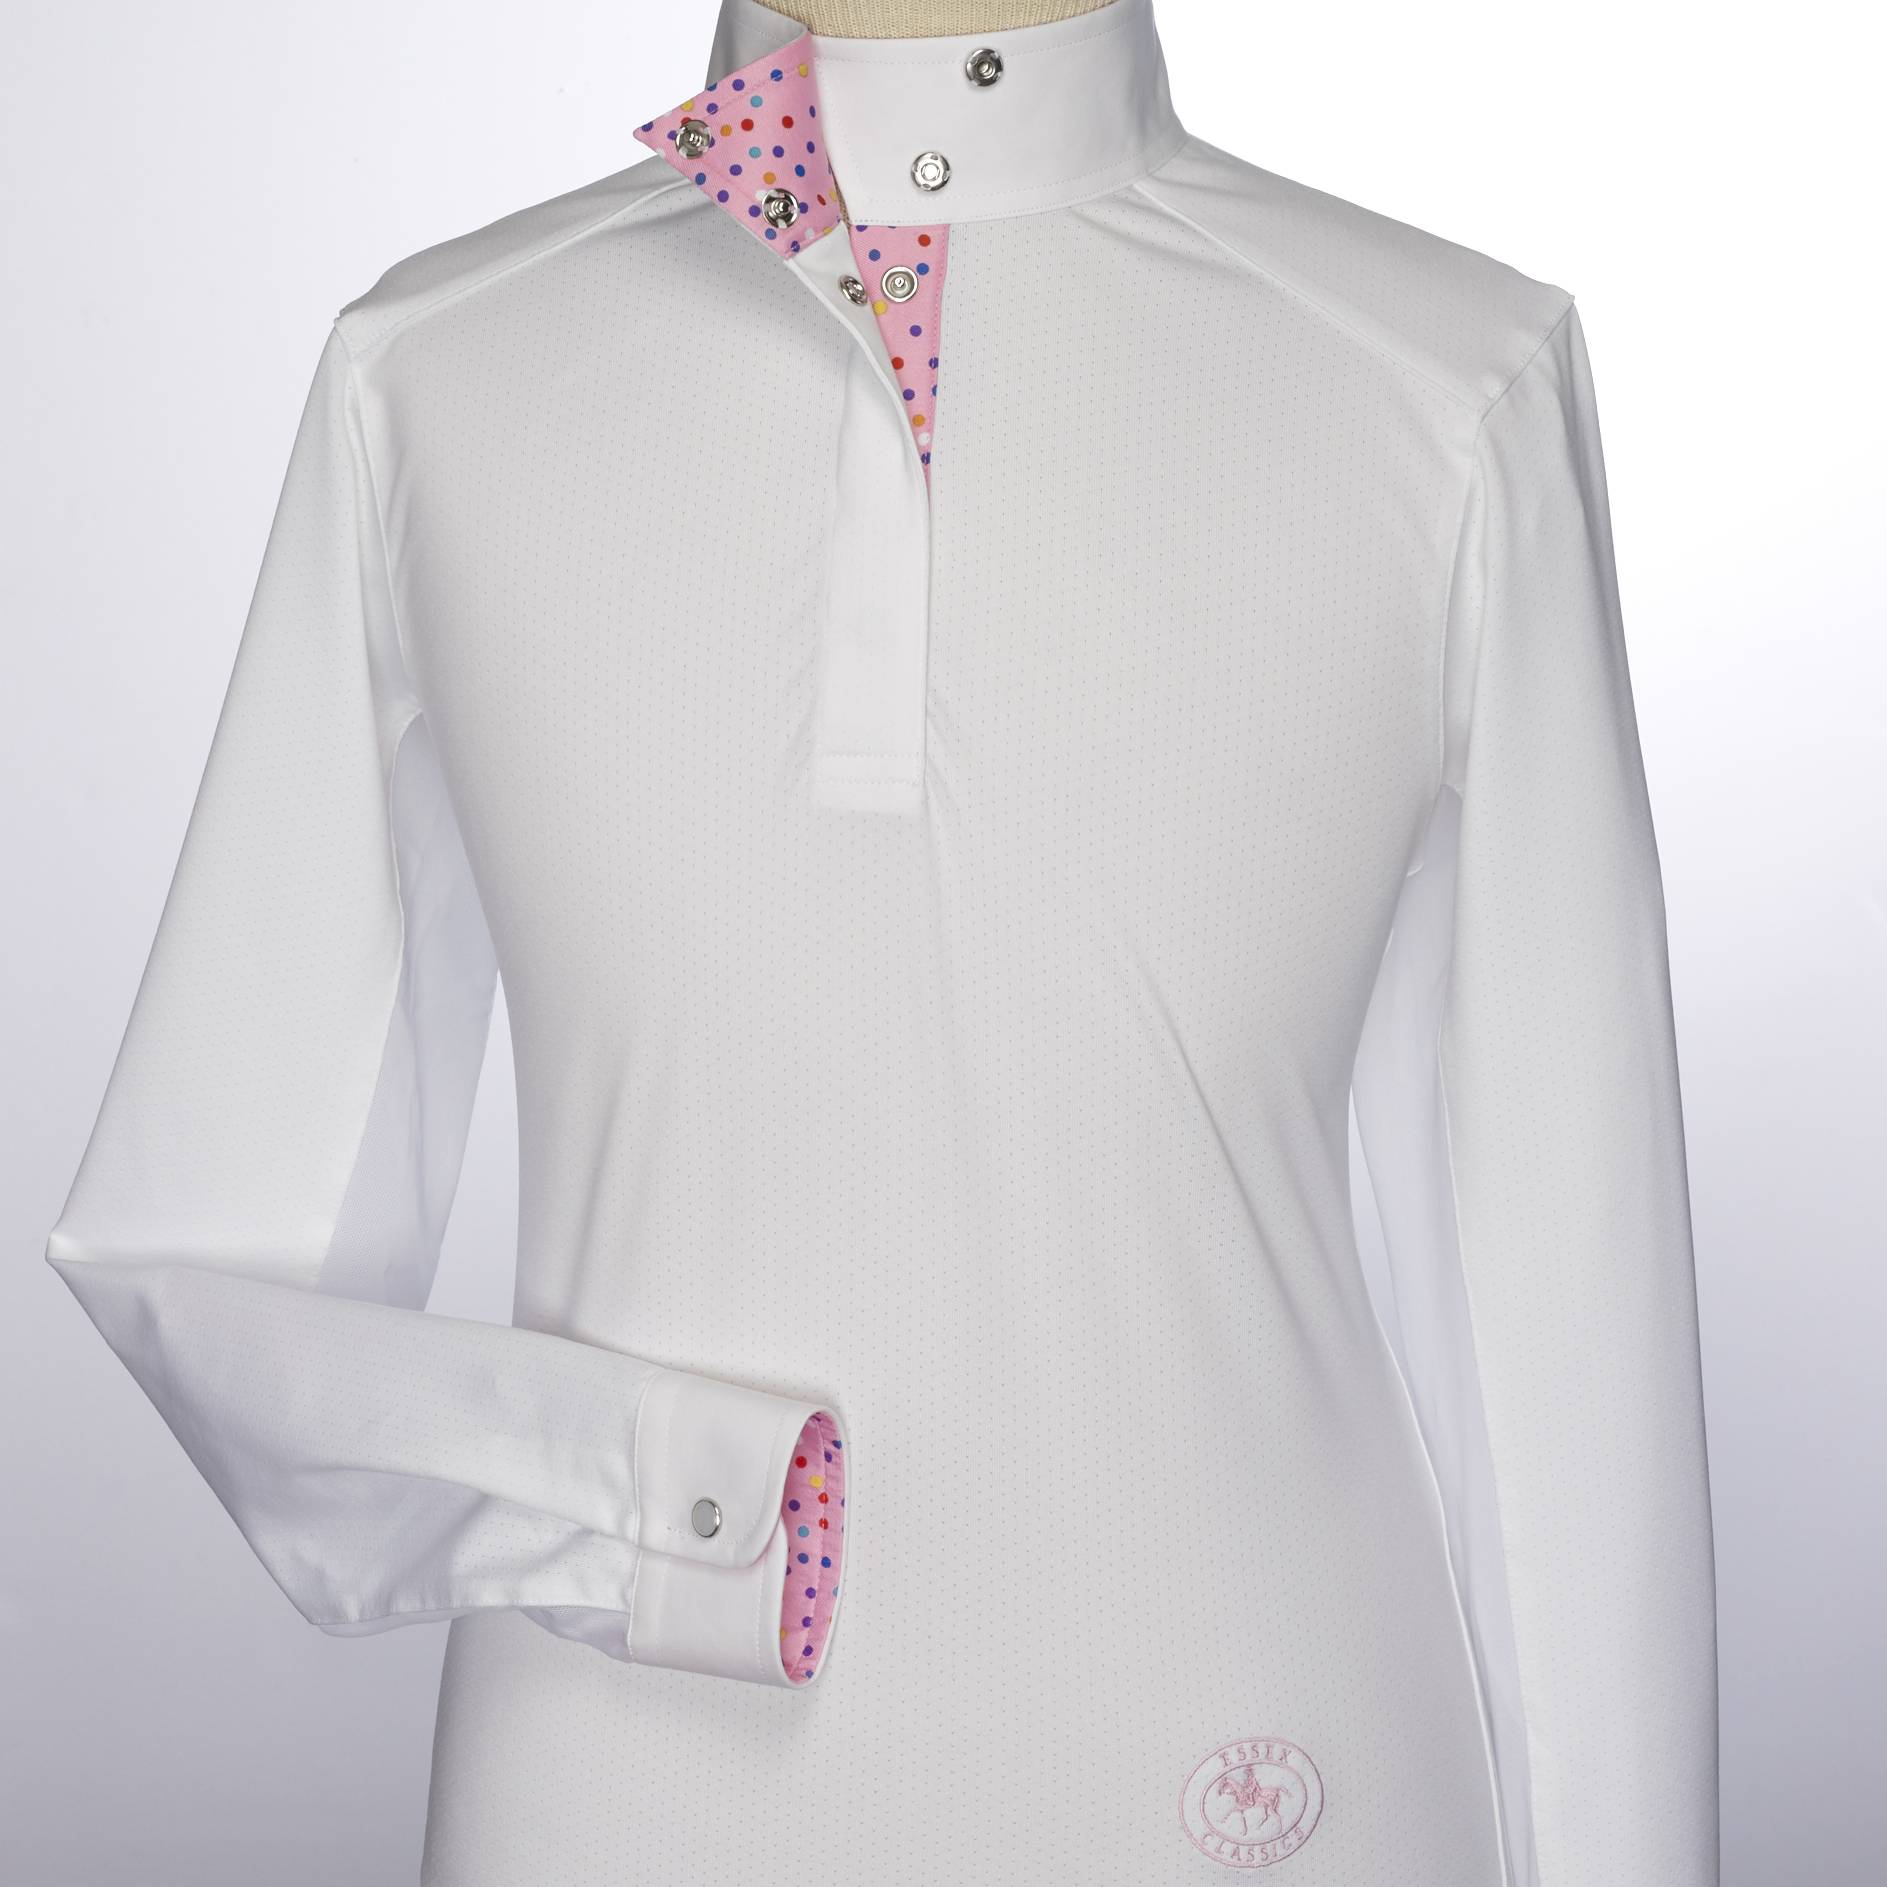 Essex Classics Pallini Talent Yarn Wrap Collar Shirt - Girls